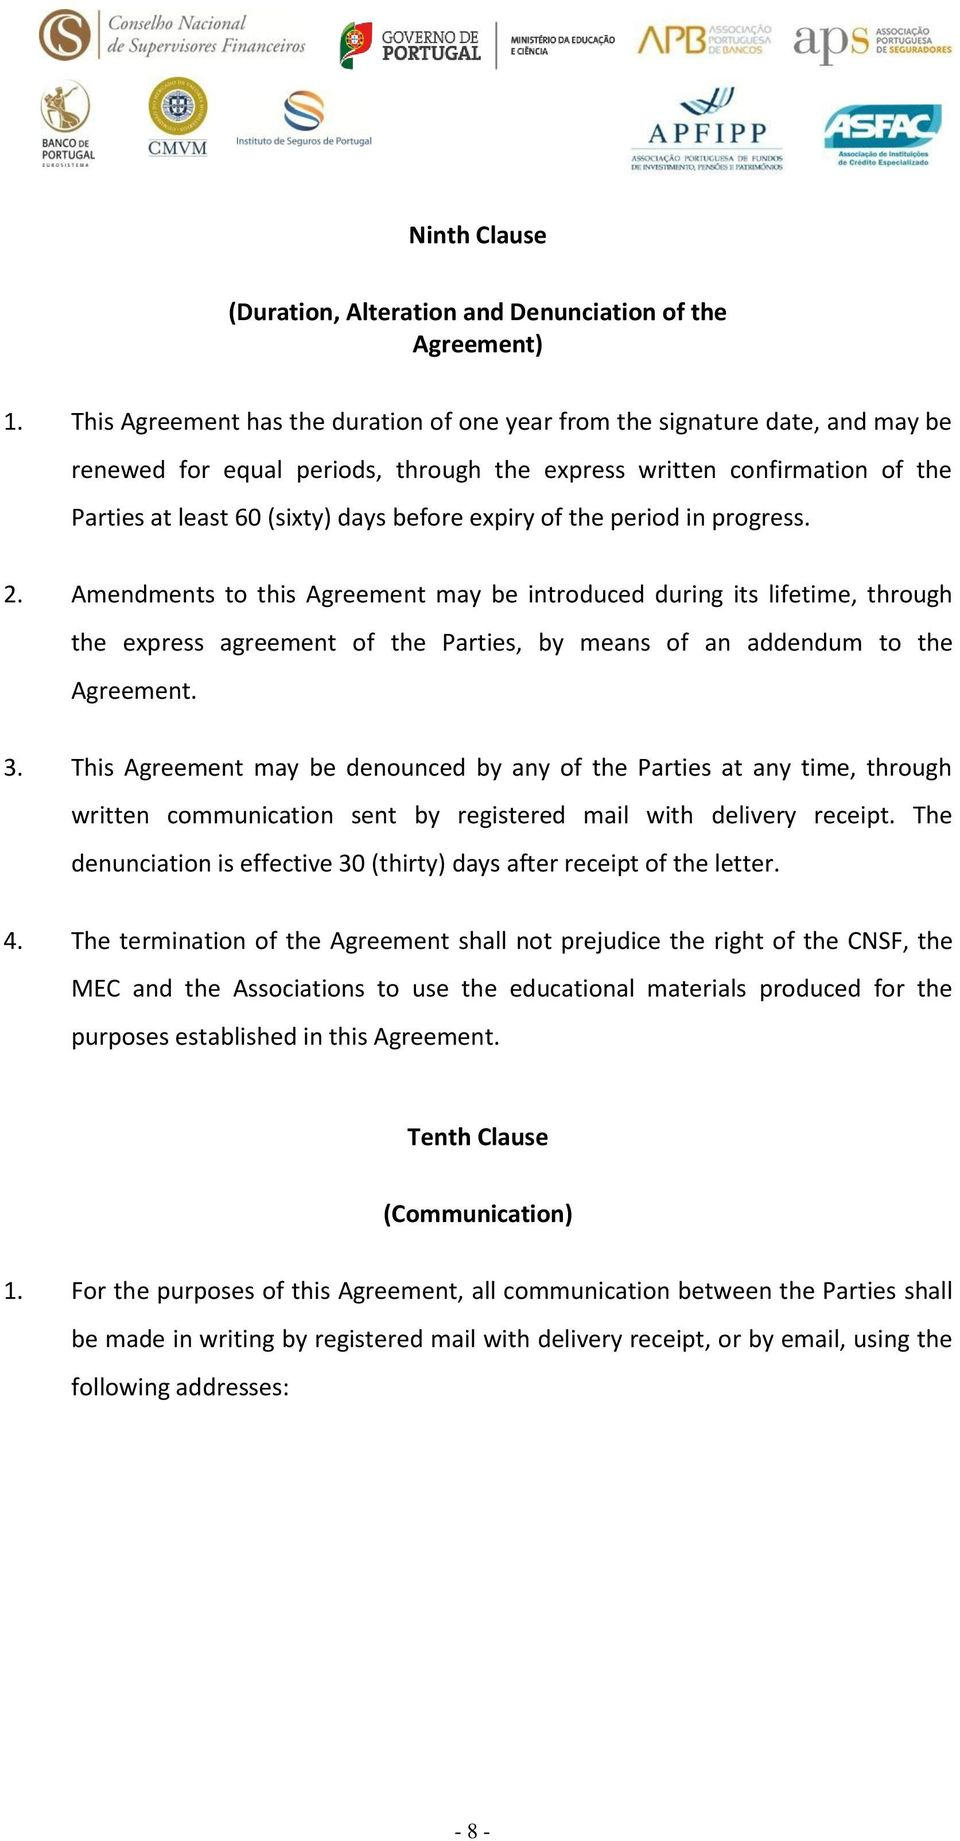 expiry of the period in progress. 2. Amendments to this Agreement may be introduced during its lifetime, through the express agreement of the Parties, by means of an addendum to the Agreement. 3.